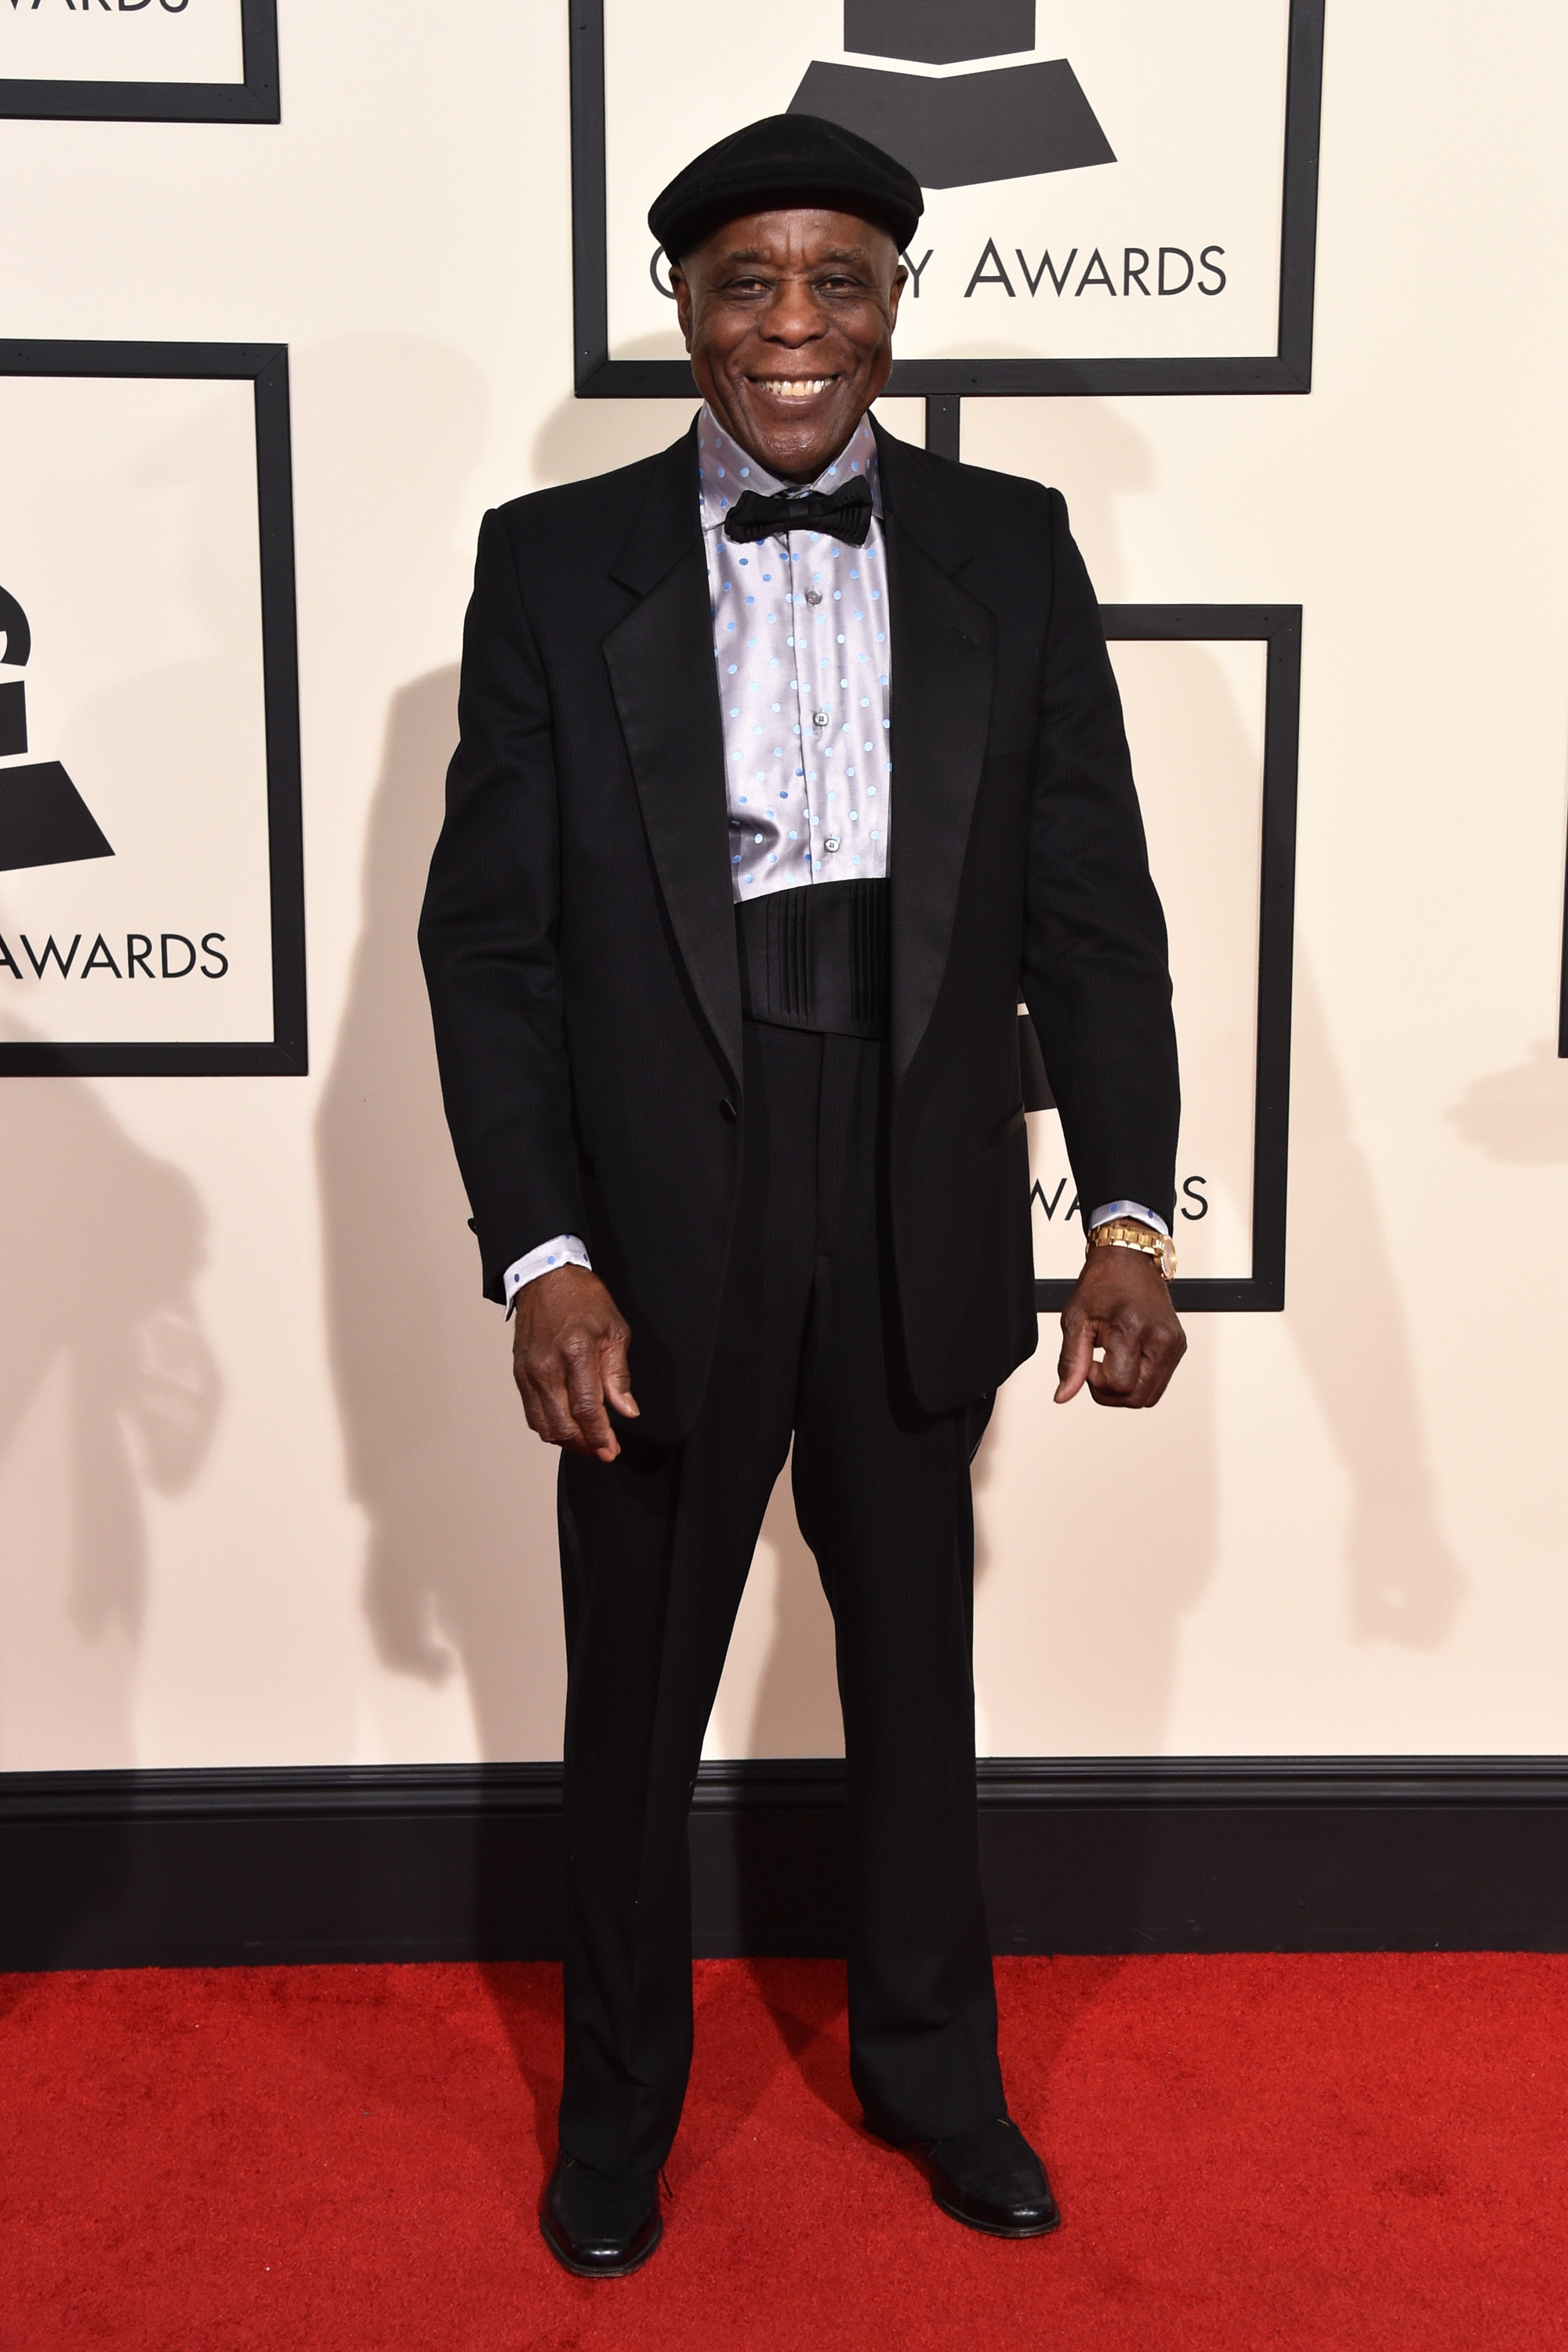 Buddy Guy attends the 58th GRAMMY Awards at Staples Center on Feb. 15, 2016 in Los Angeles.